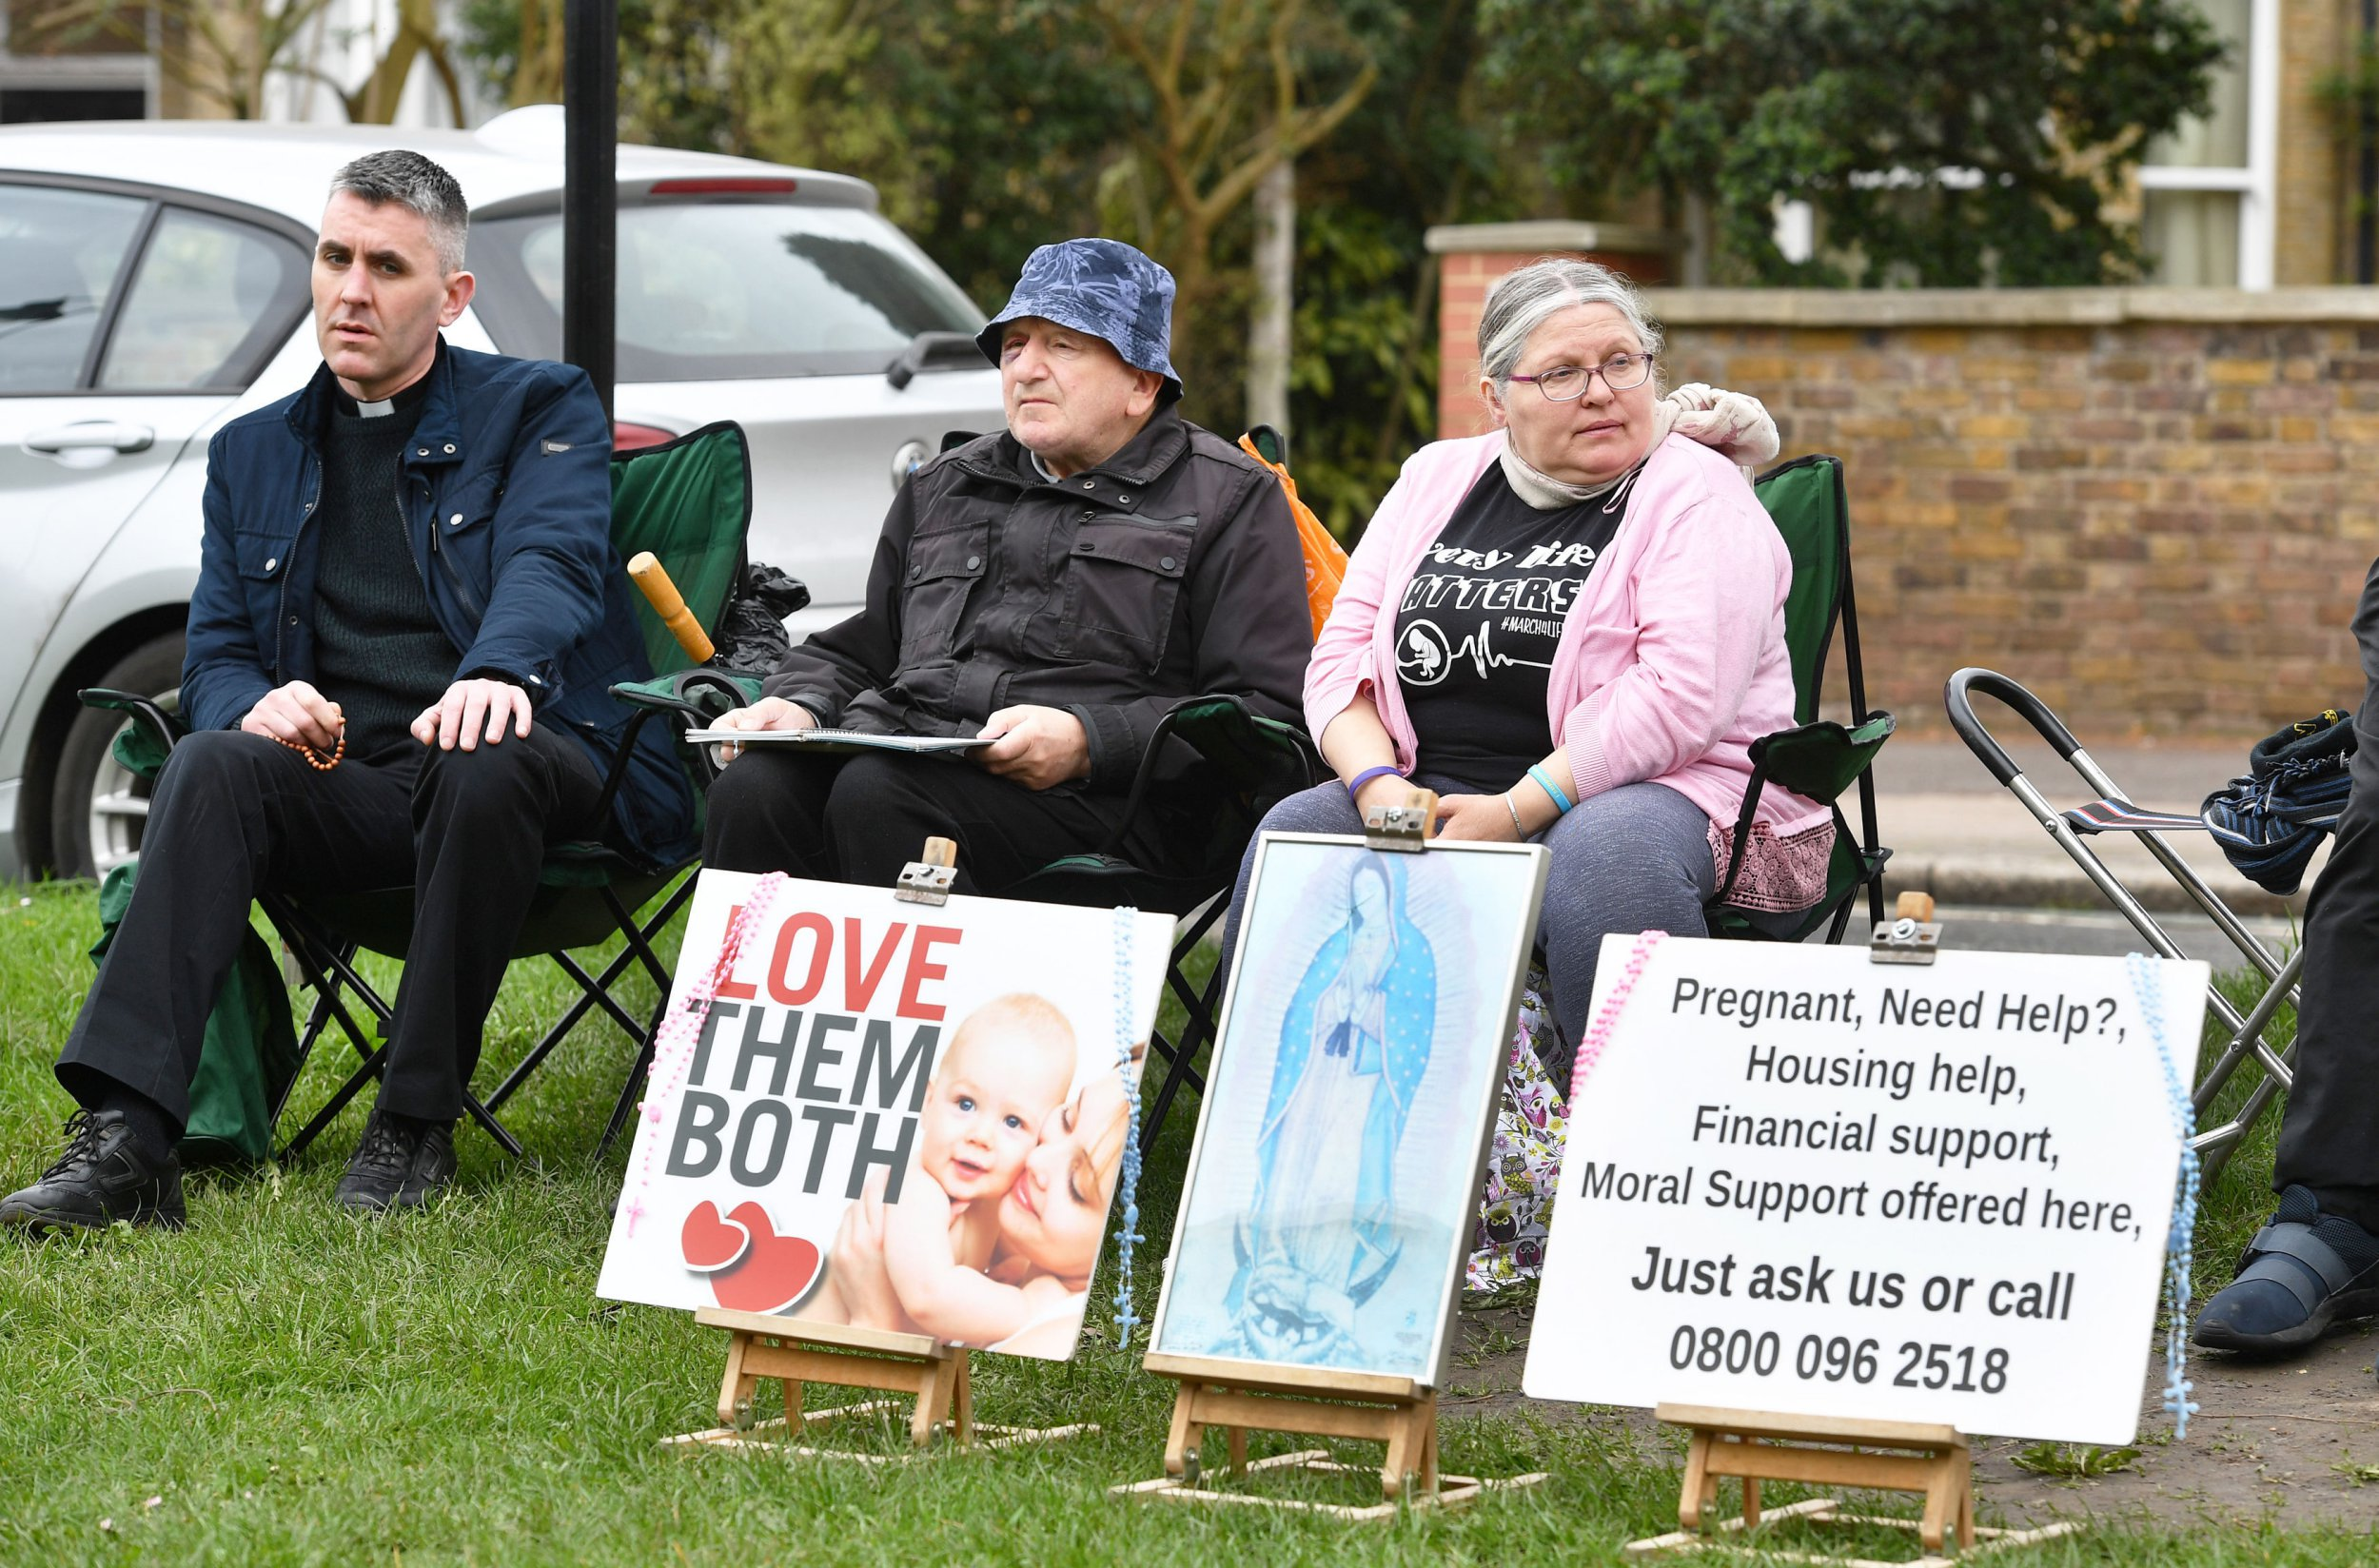 """EMBARGOED TO 0001 TUESDAY APRIL 10 Pro-life demonstrators outside the Marie Stopes clinic on Mattock Lane, ahead of a vote by Ealing Council on whether to implement a safe zone outside the west London abortion clinic to protect women from being intimidated. PRESS ASSOCIATION Photo. Picture date: Saturday April 7, 2018. The local authority has been exploring a range of options on how to prevent """"intimidation, harassment and distress"""" for women using the Marie Stopes clinic on Mattock Lane following a petition set up by local women. See PA story POLITICS Abortion. Photo credit should read: John Stillwell/PA Wire"""